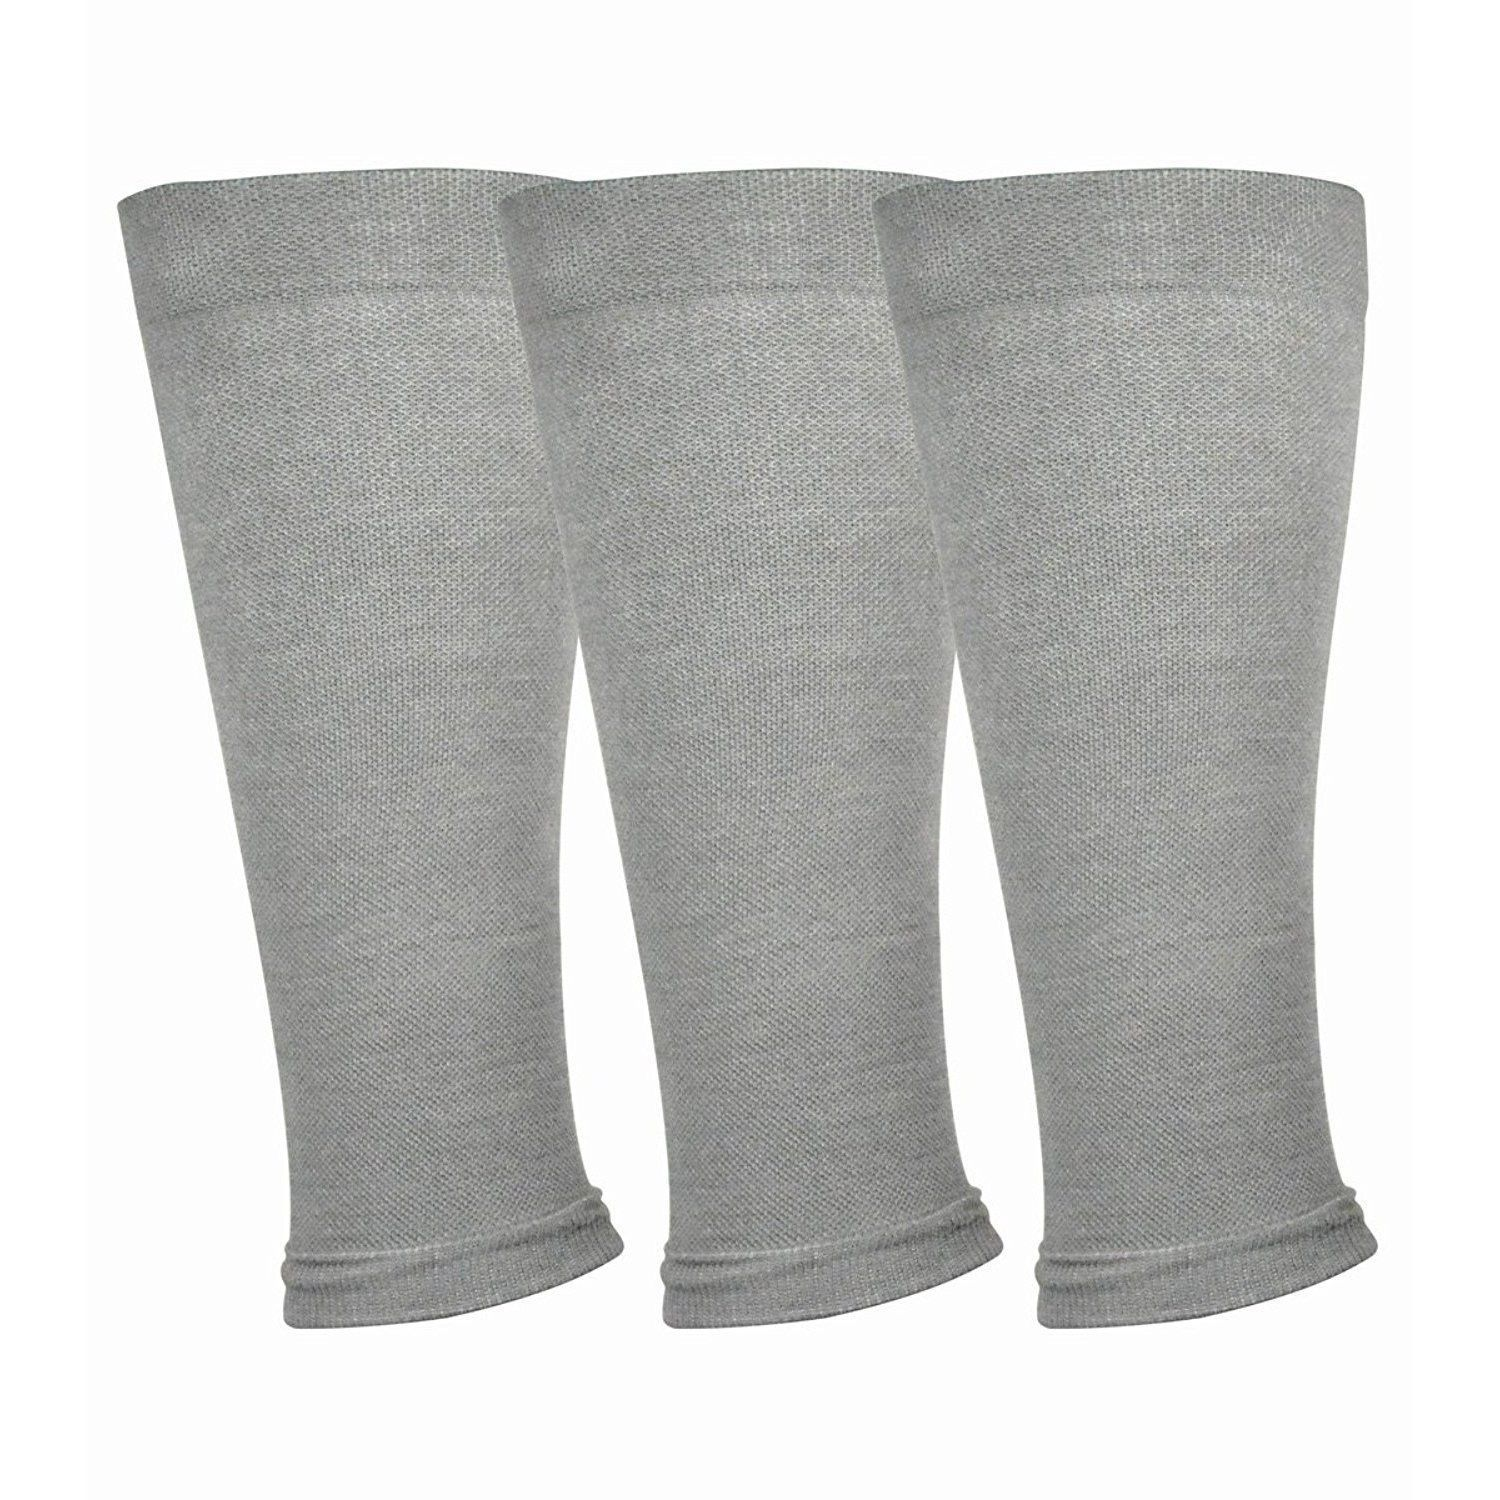 TeeHee from Bamboo Footless Compression Sleeve with Rib 3-Pack